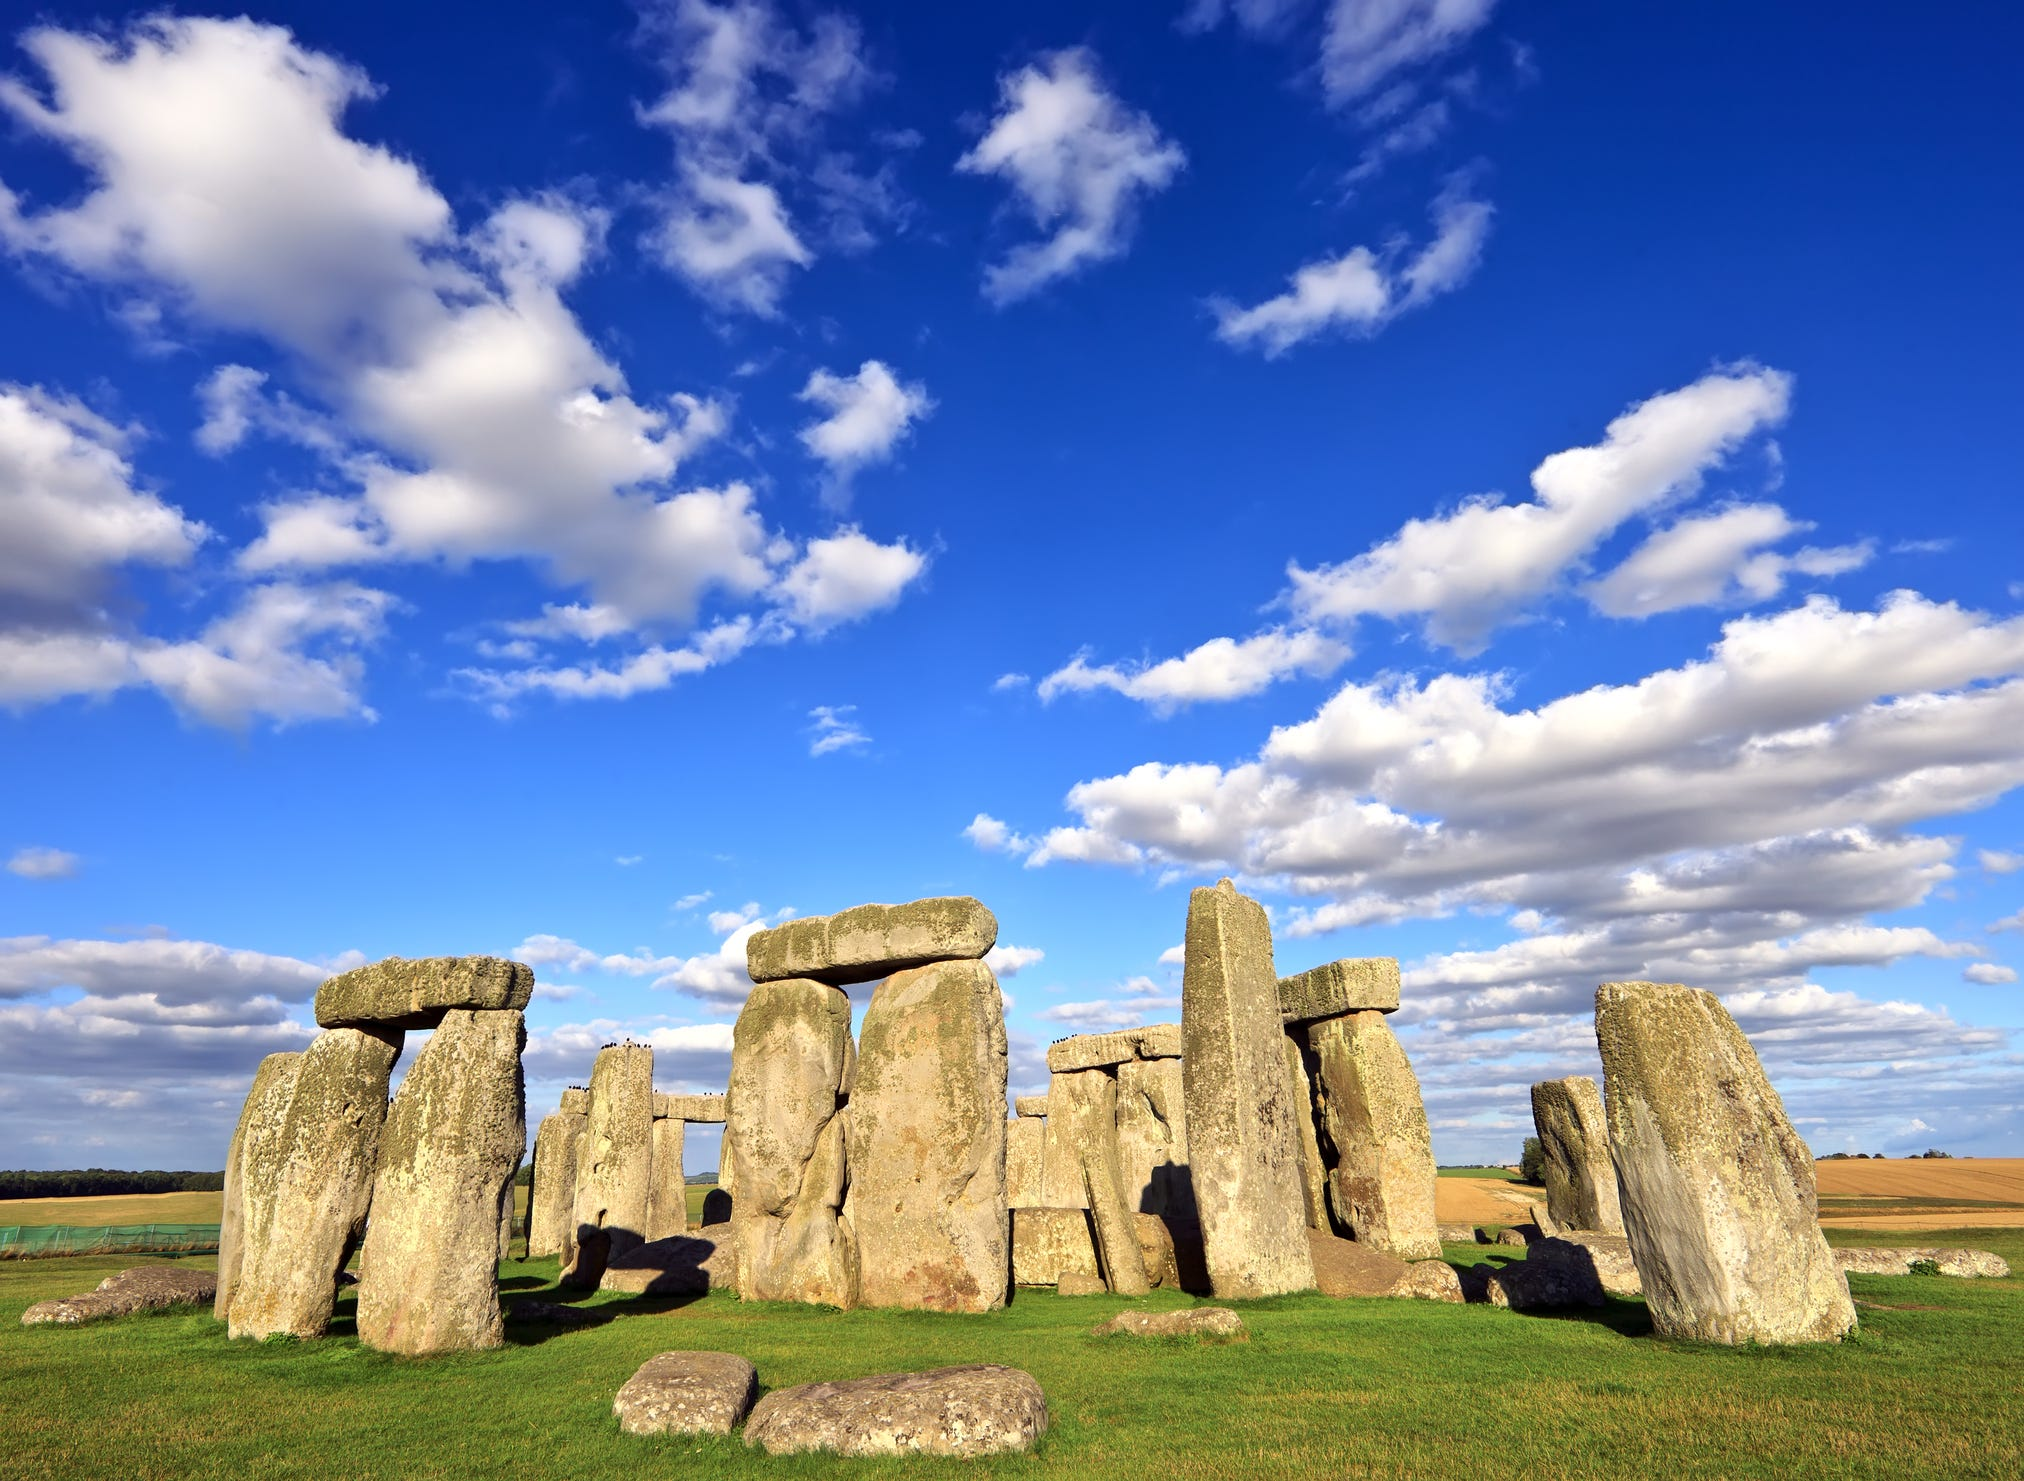 Why did Stonehenge's massive rocks come from Wales, 180 miles away?